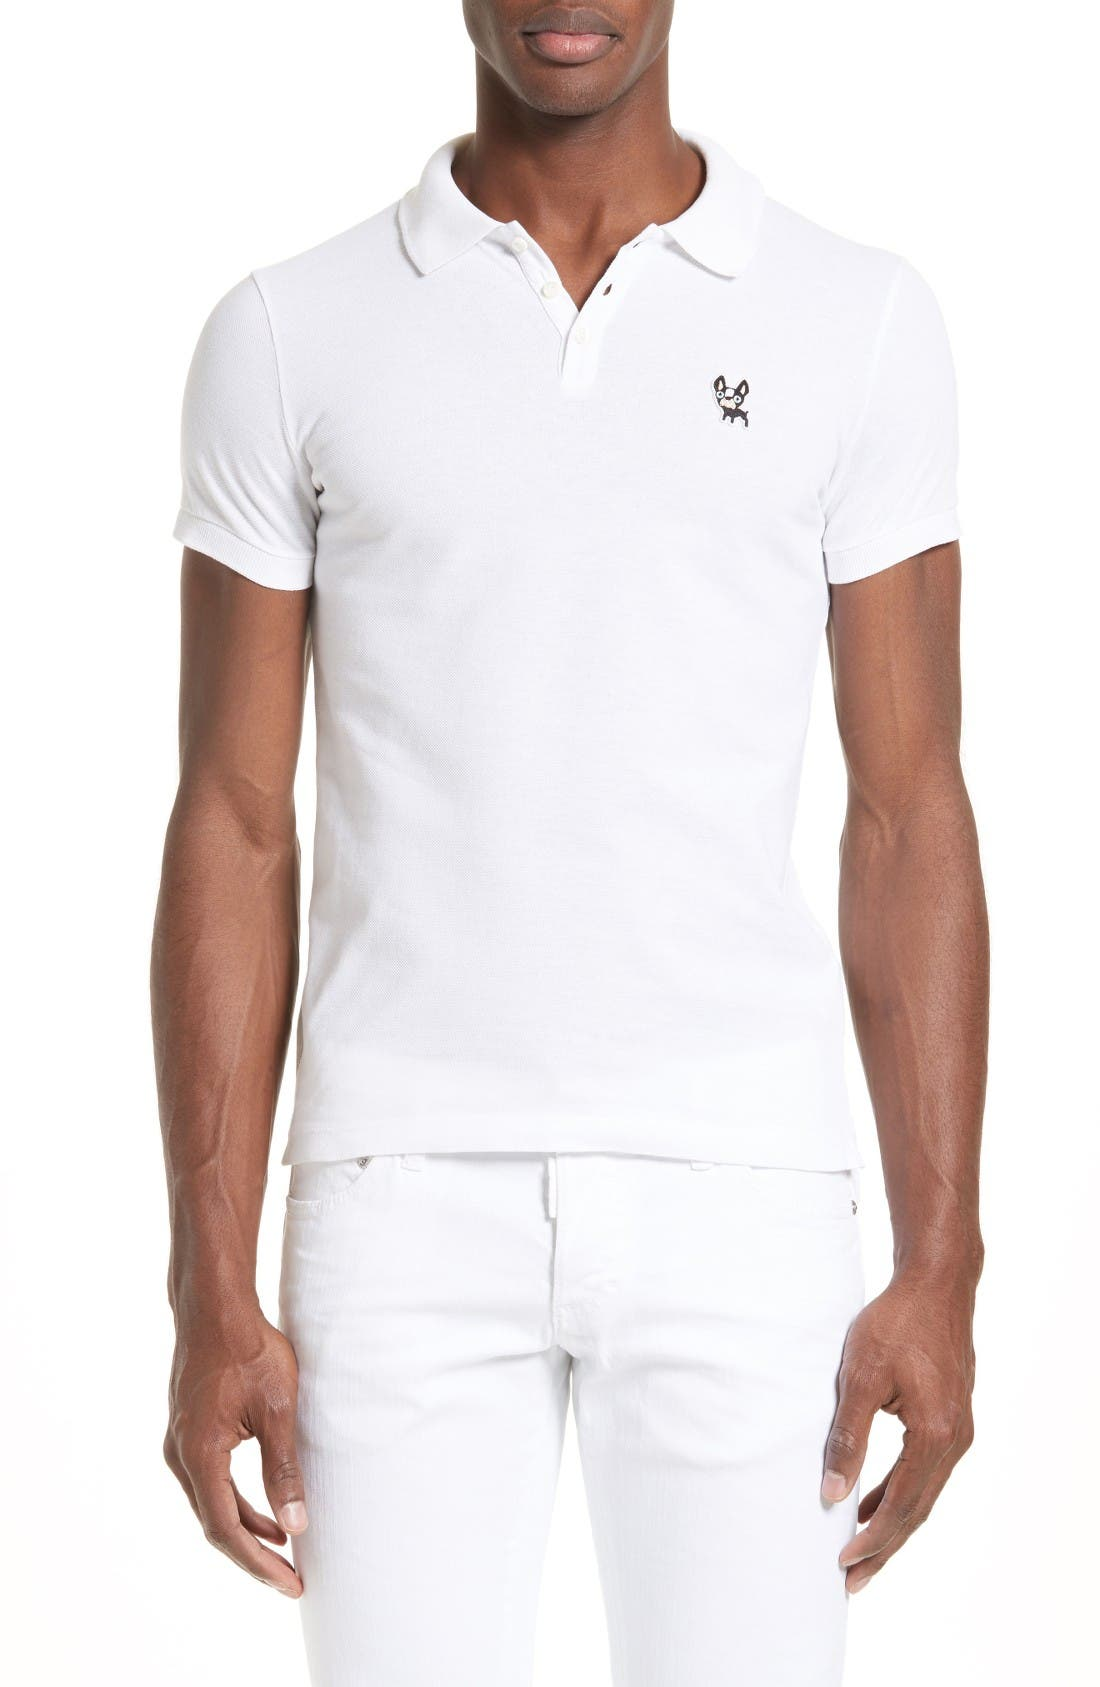 Main Image - Dsquared2 Ciro Dog Extra Trim Fit Polo